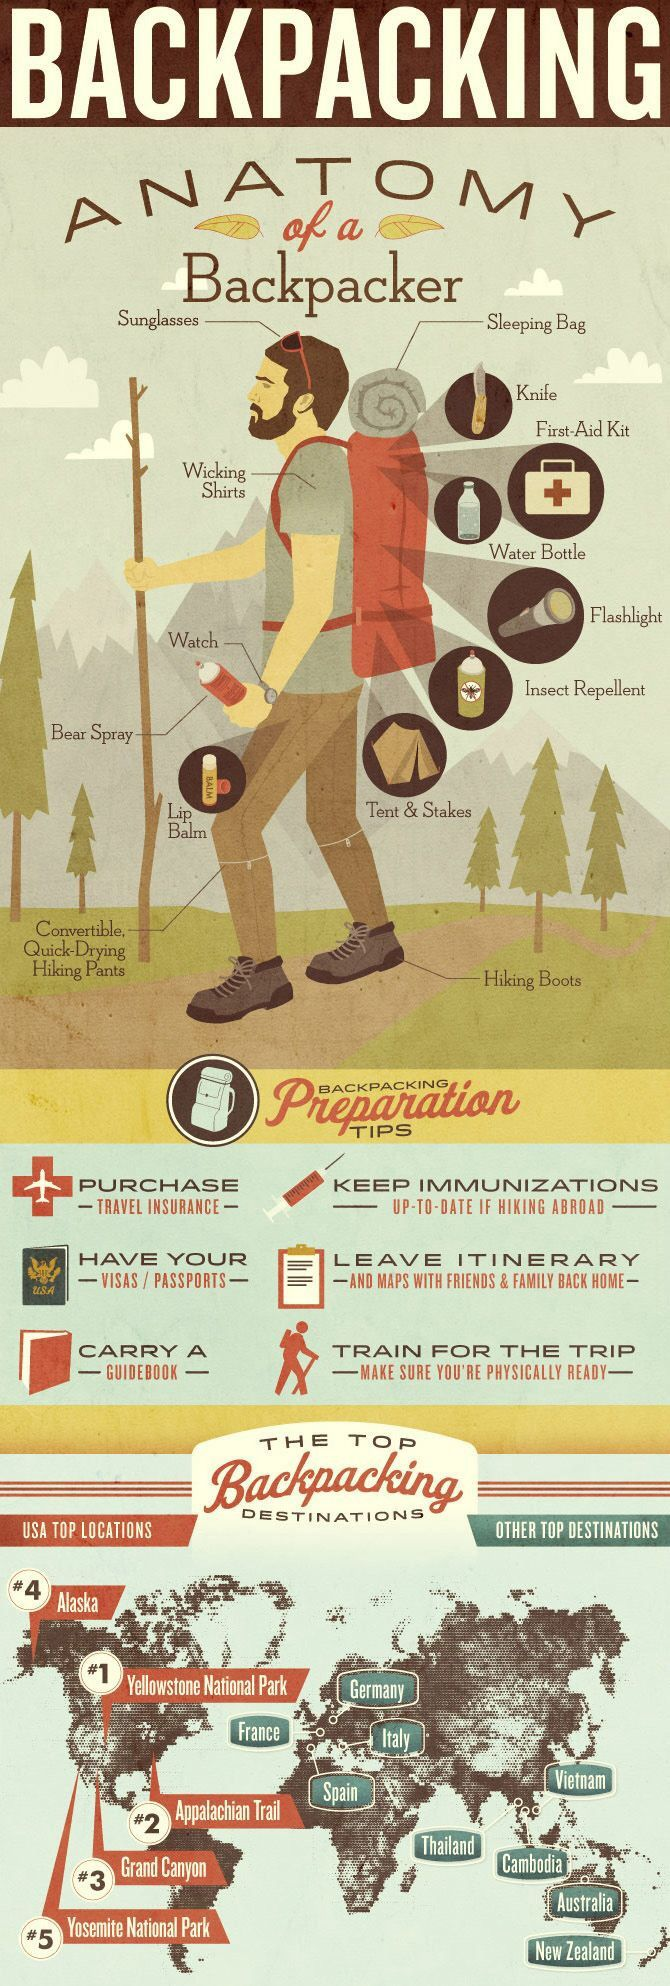 For the backpacking beardsmen out there.